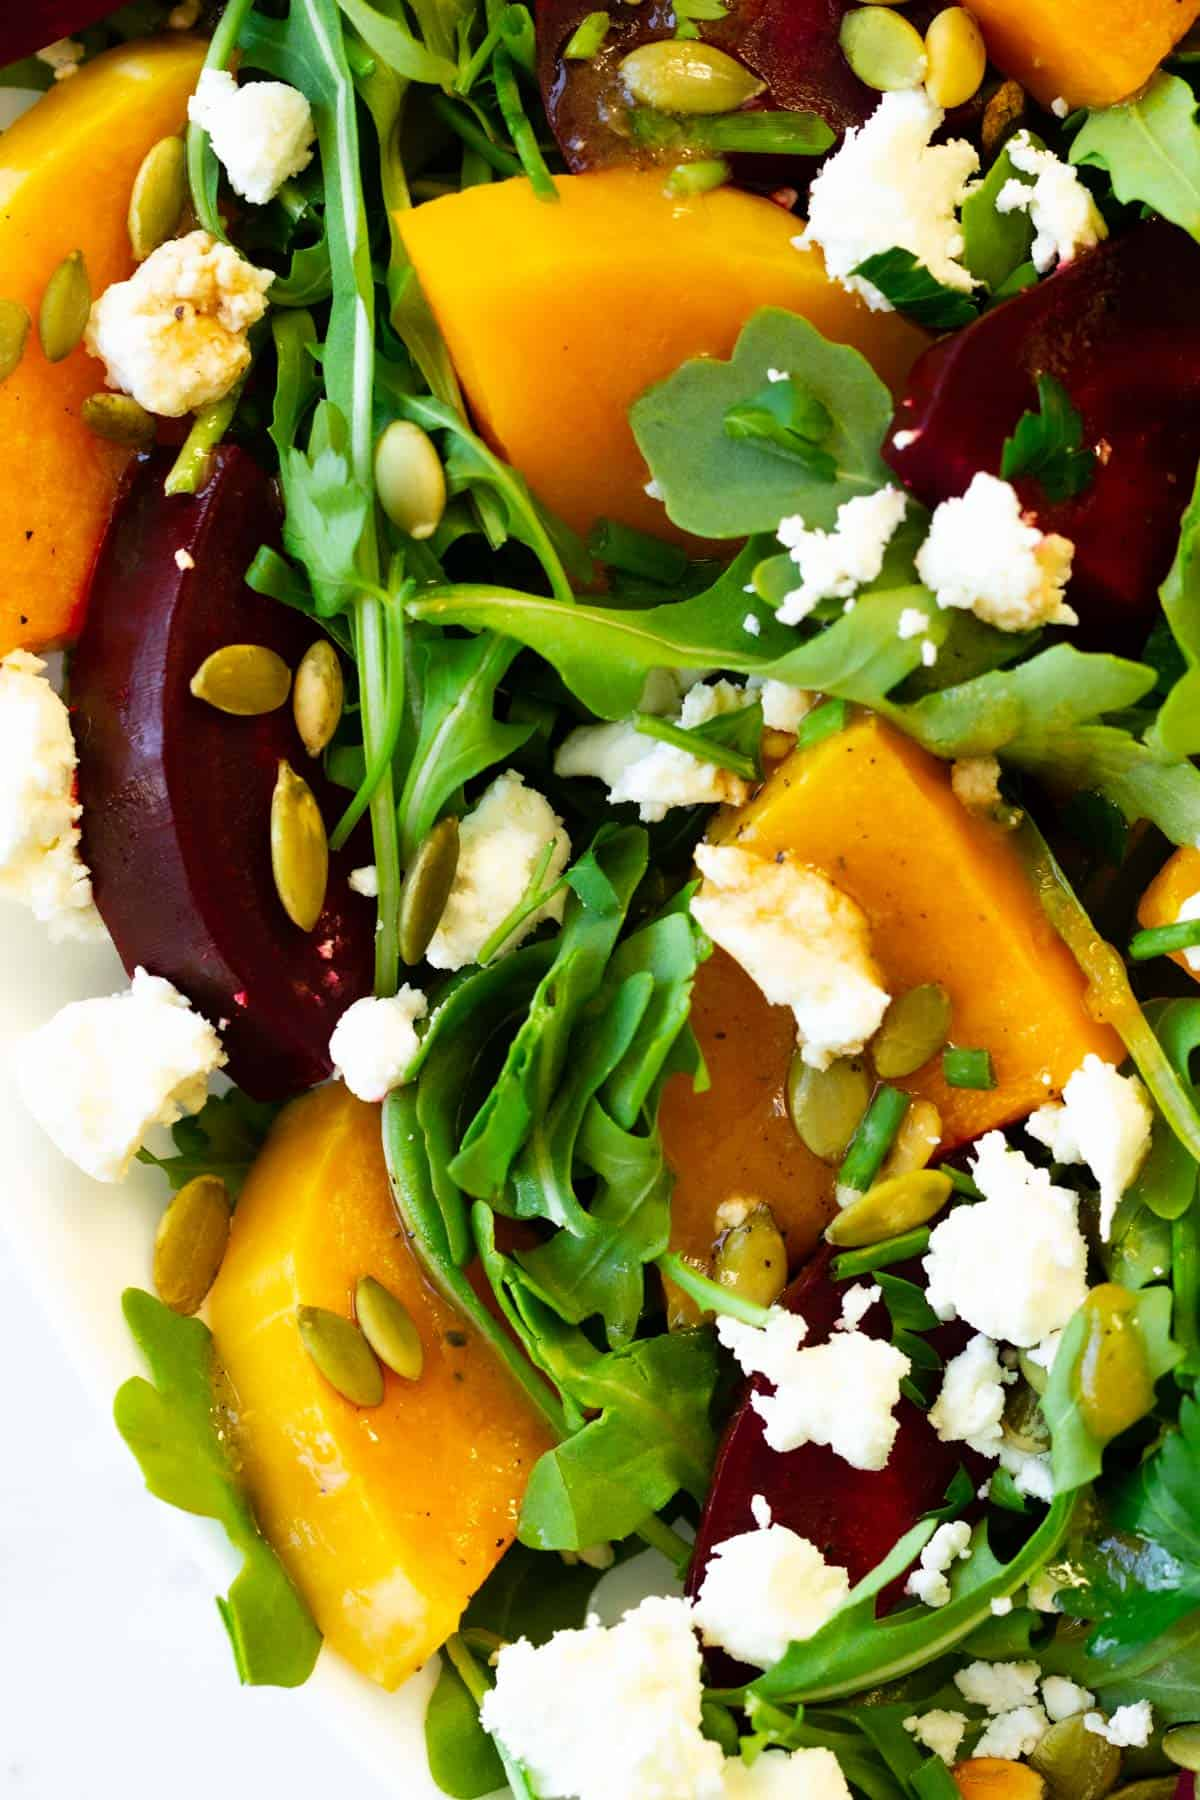 Sliced roasted beets and butternut squash with arugula, pepitas, and cheese.